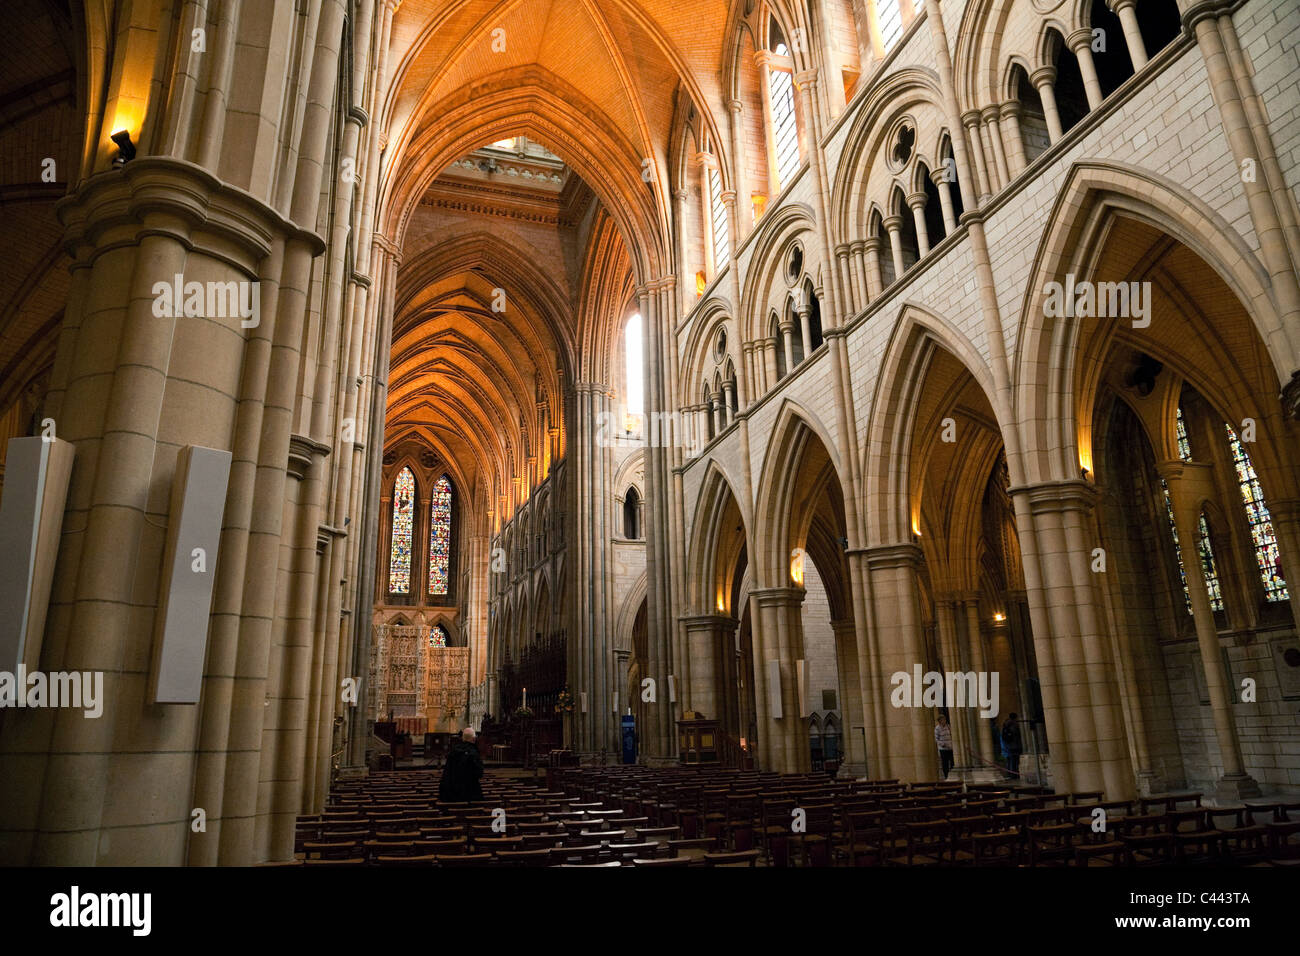 Inside Truro cathedral, Truro, Cornwall UK - Stock Image